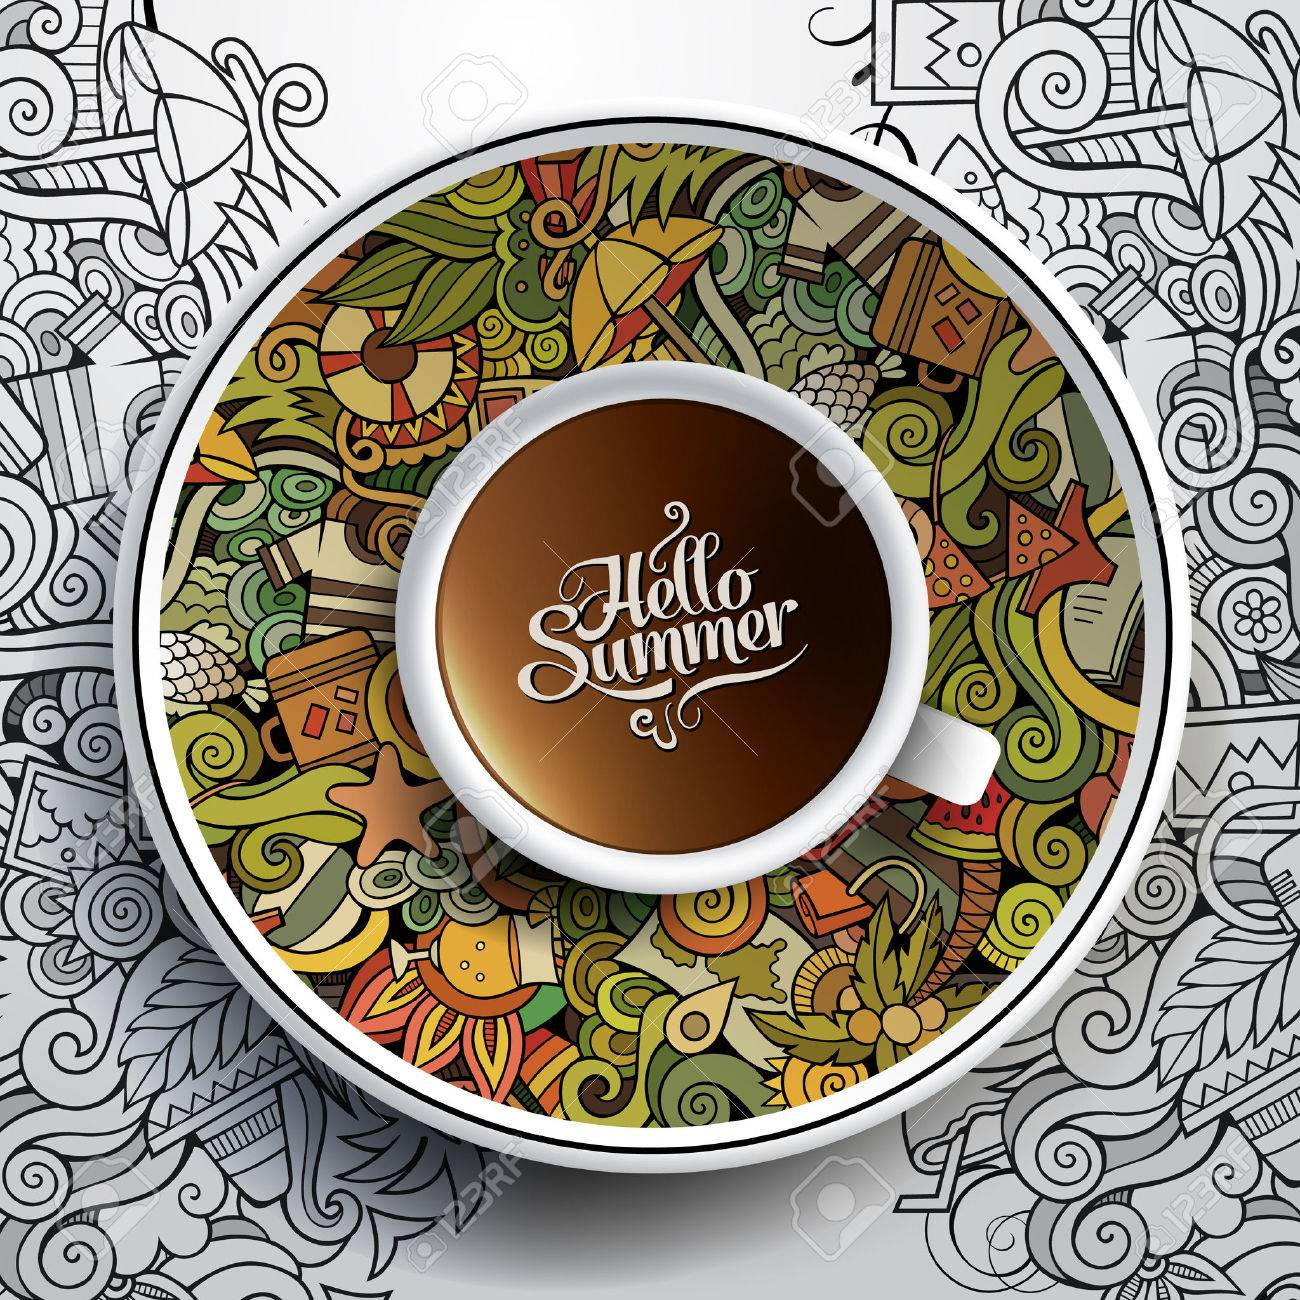 Vector illustration with a Cup of coffee and hand drawn watercolor summer doodles on a saucer and background - 40908341